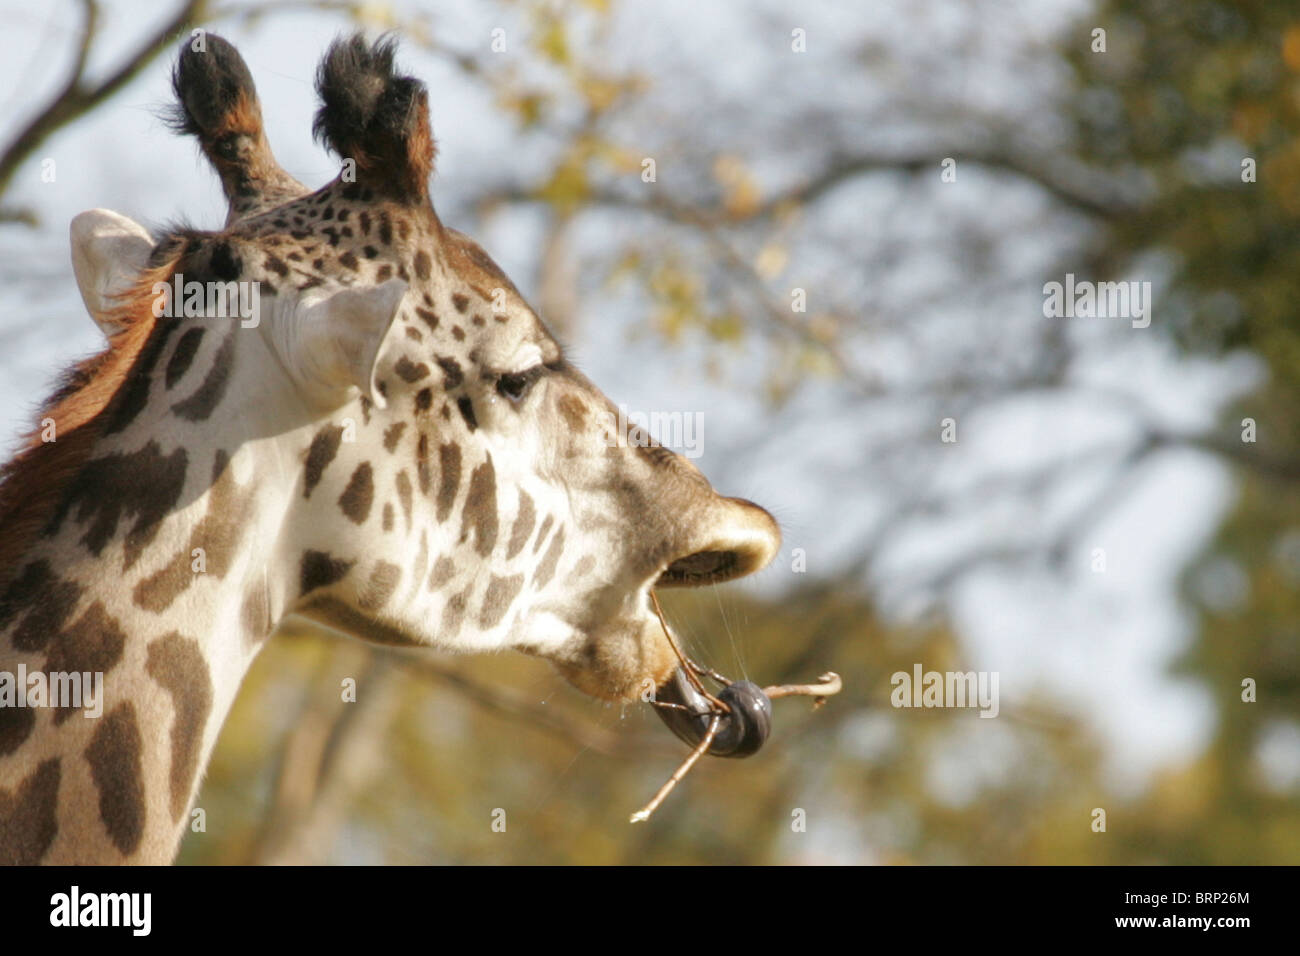 Masaai Giraffe with its tongue wrapped around a twig - Stock Image